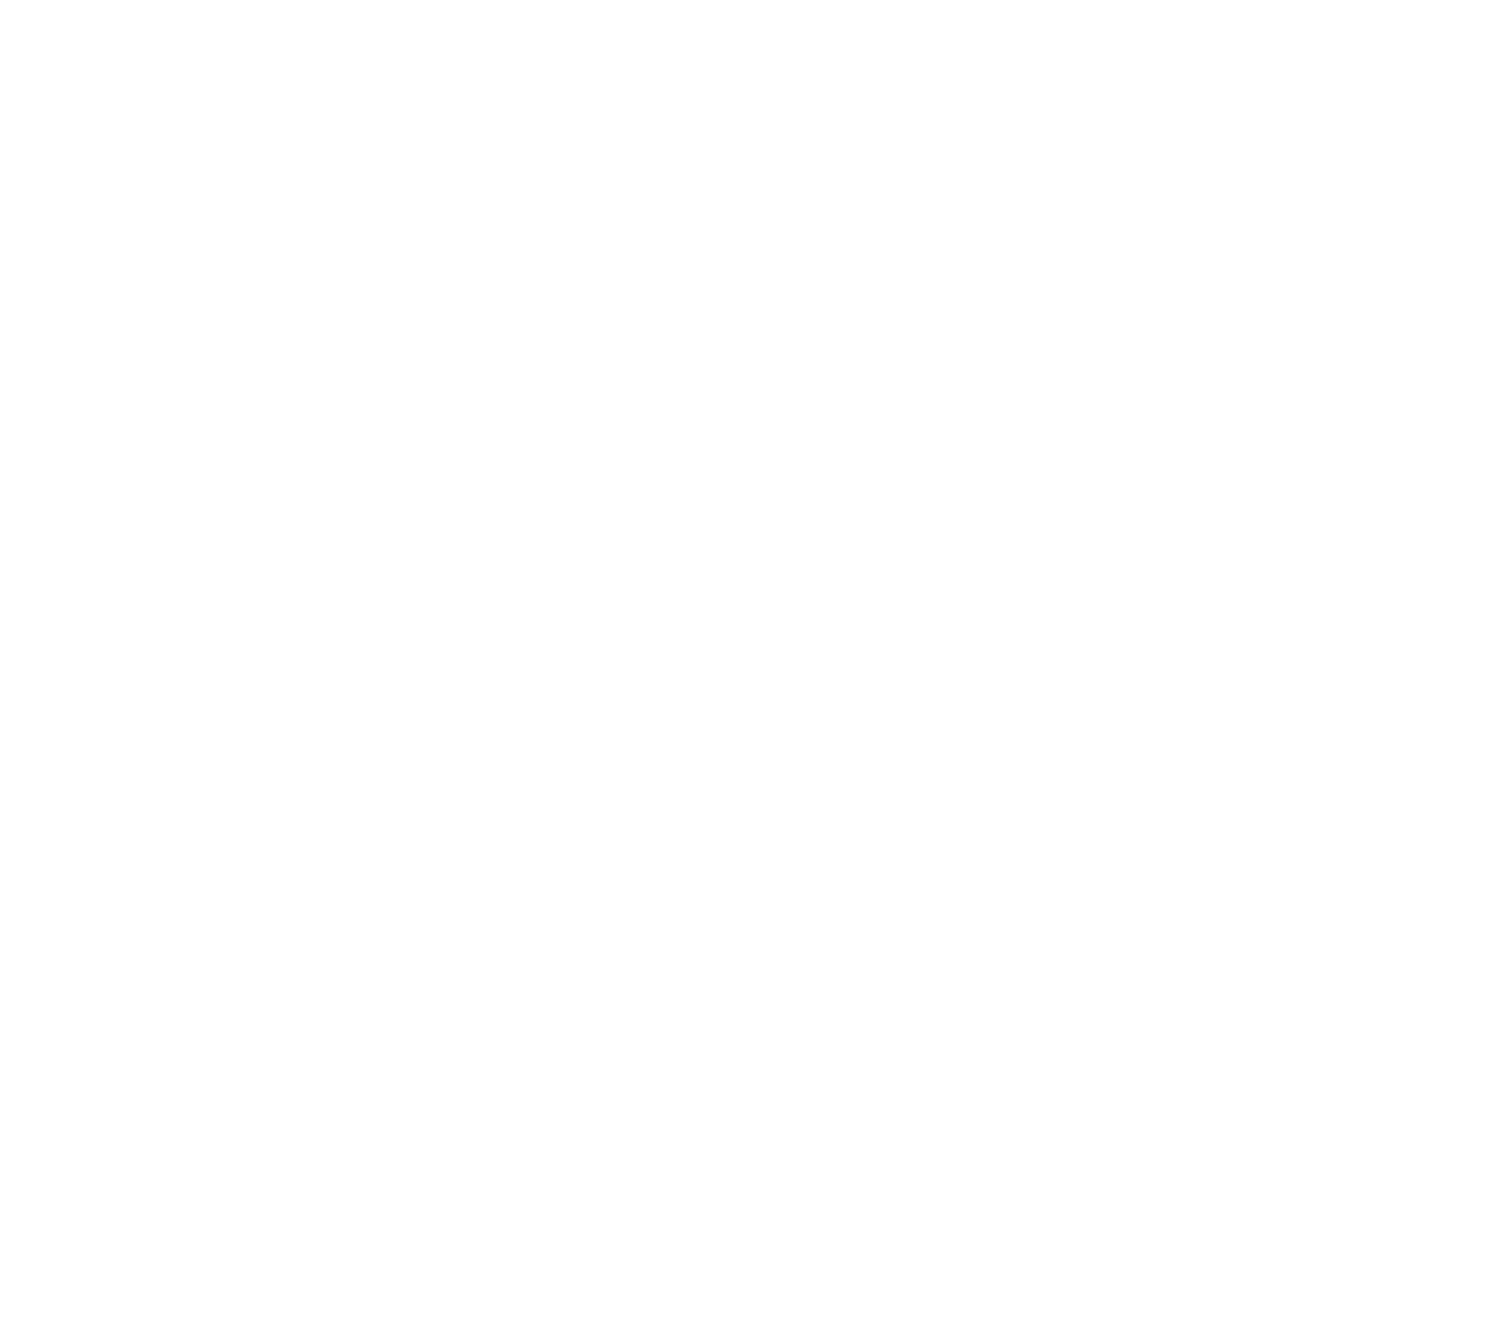 Raising Voices USA